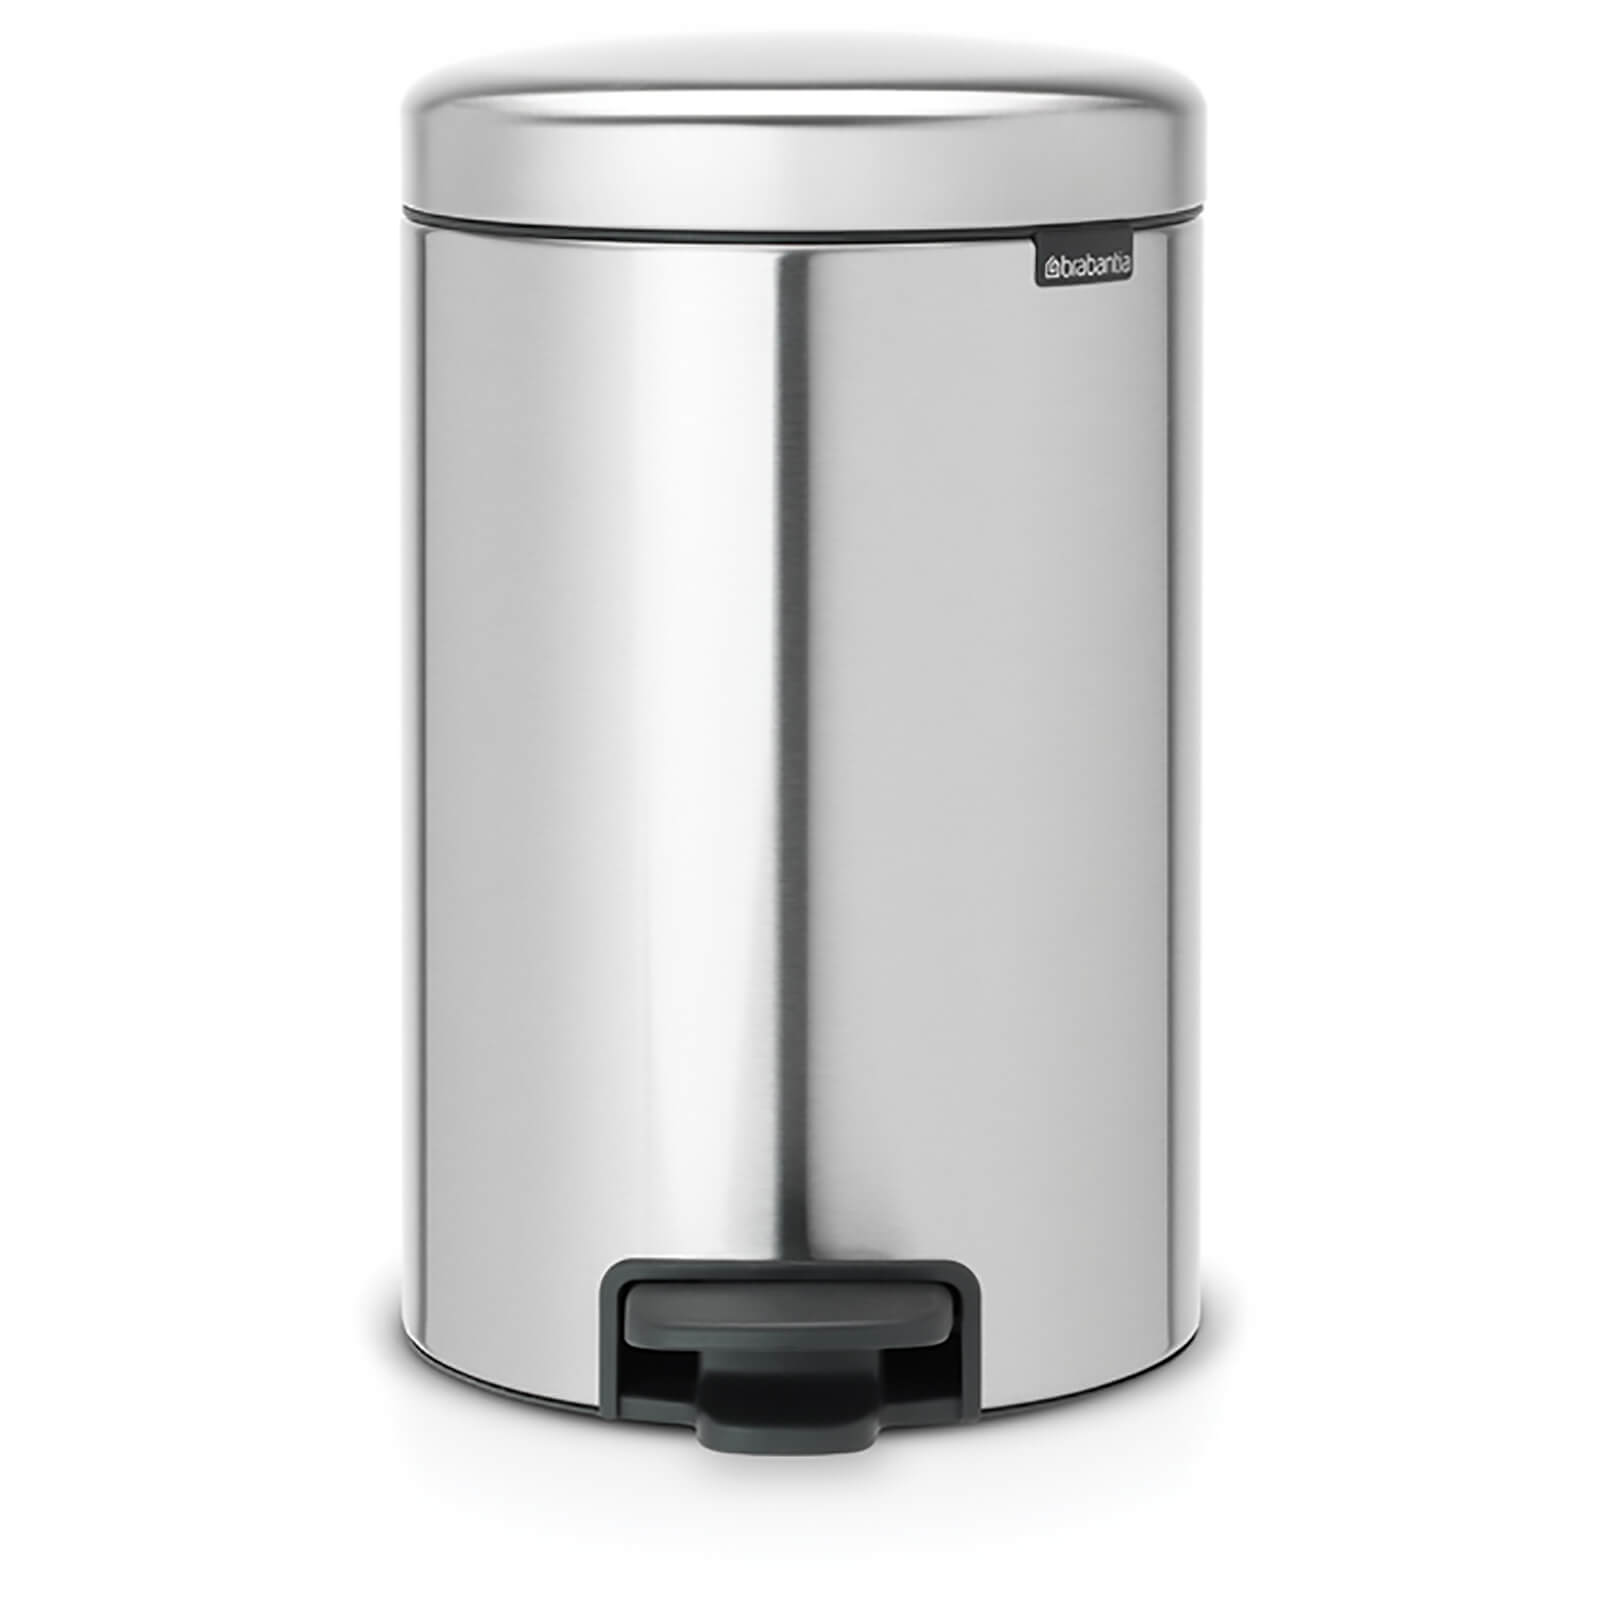 Brabantia New Icon 12 Litre Pedal Bin - Matt Steel Fingerprint Proof